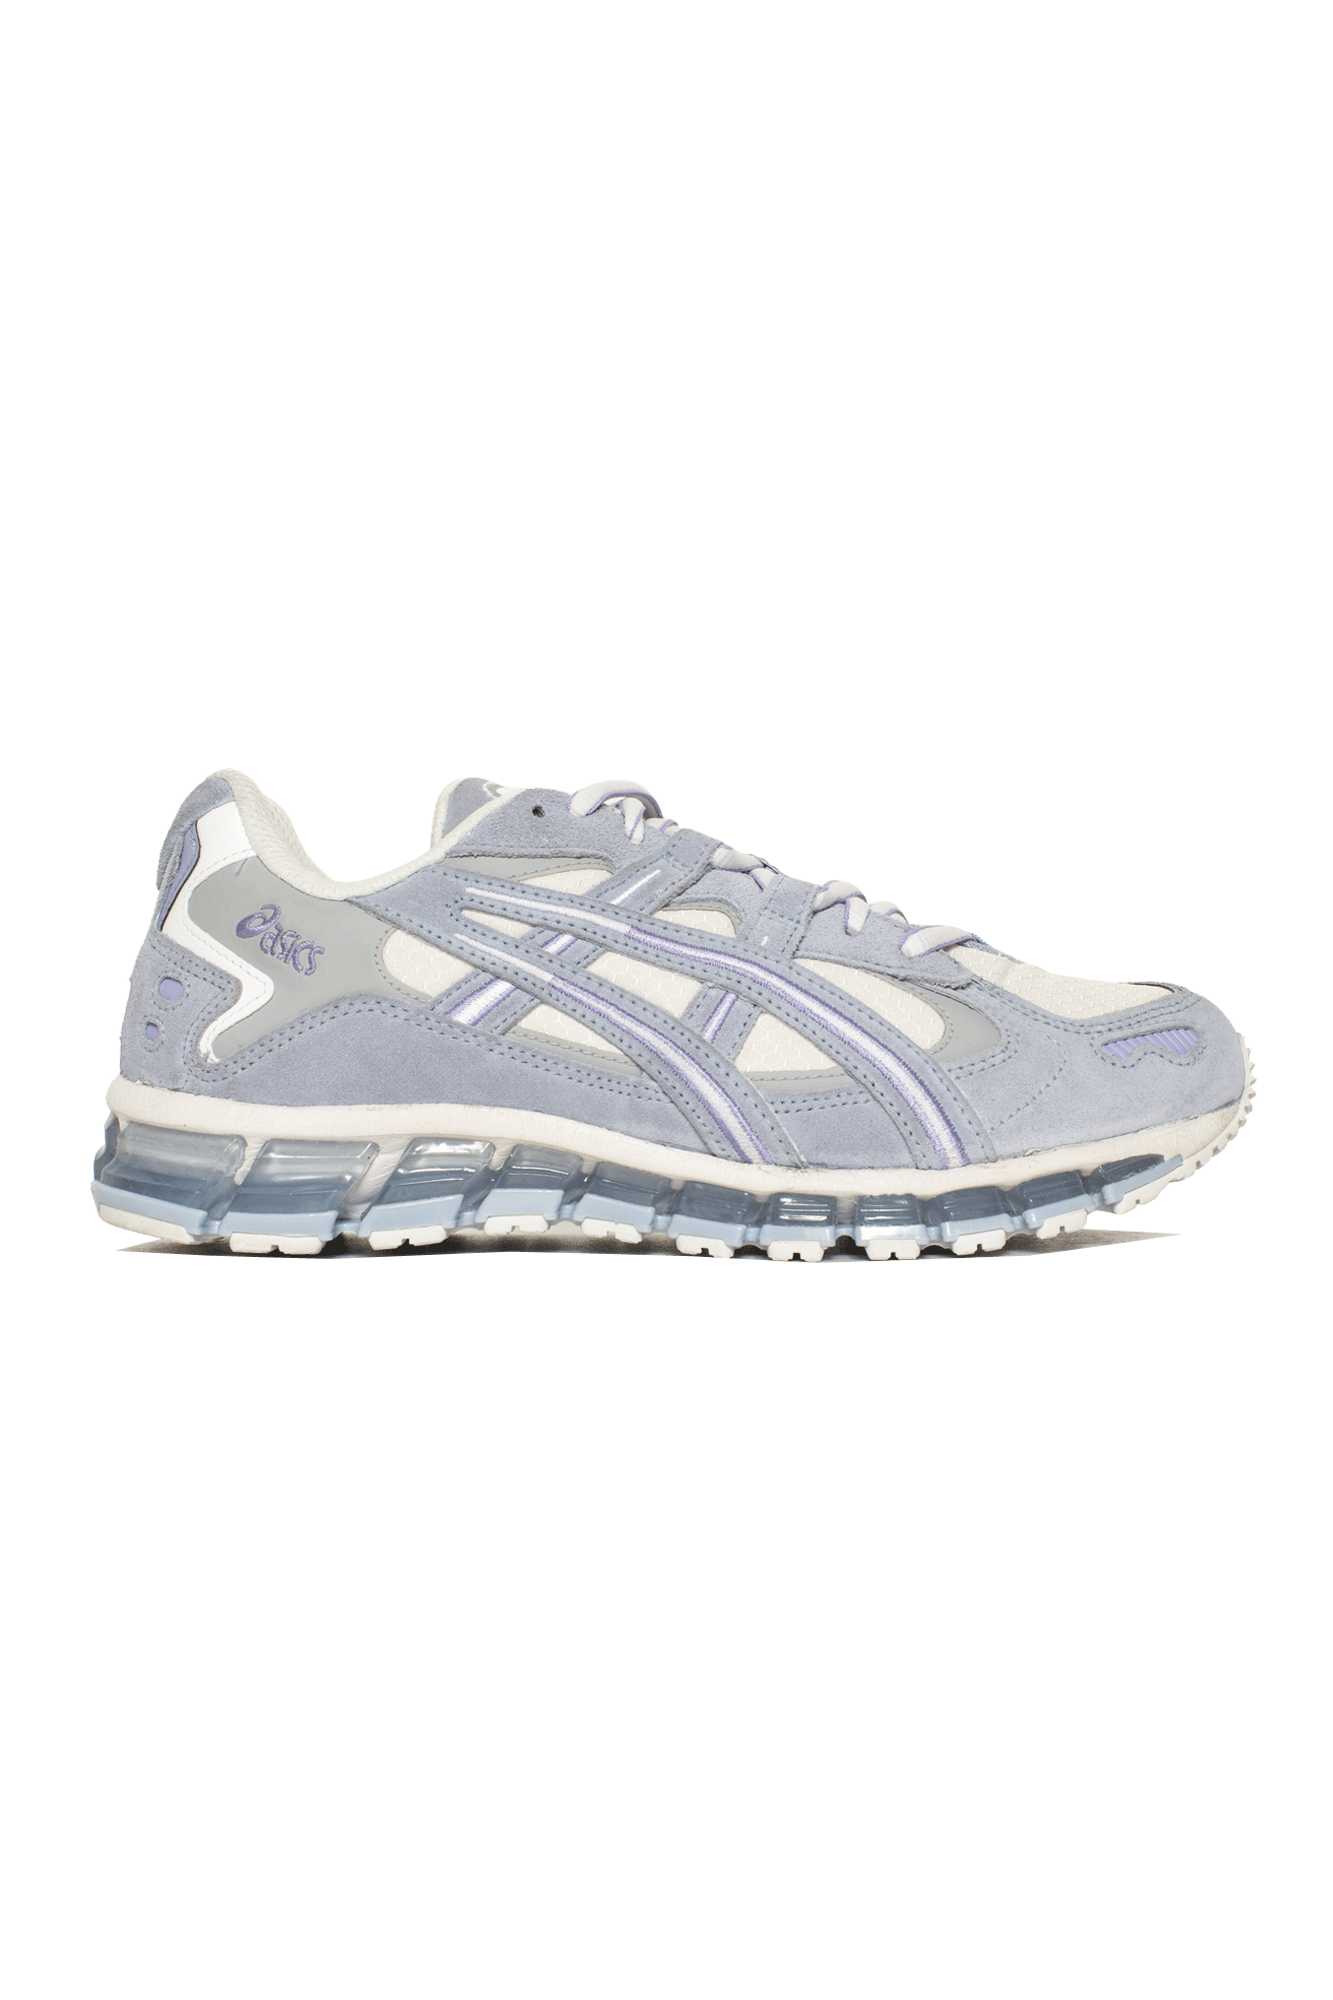 Gel-Kayano 5 360 G-TX Blue